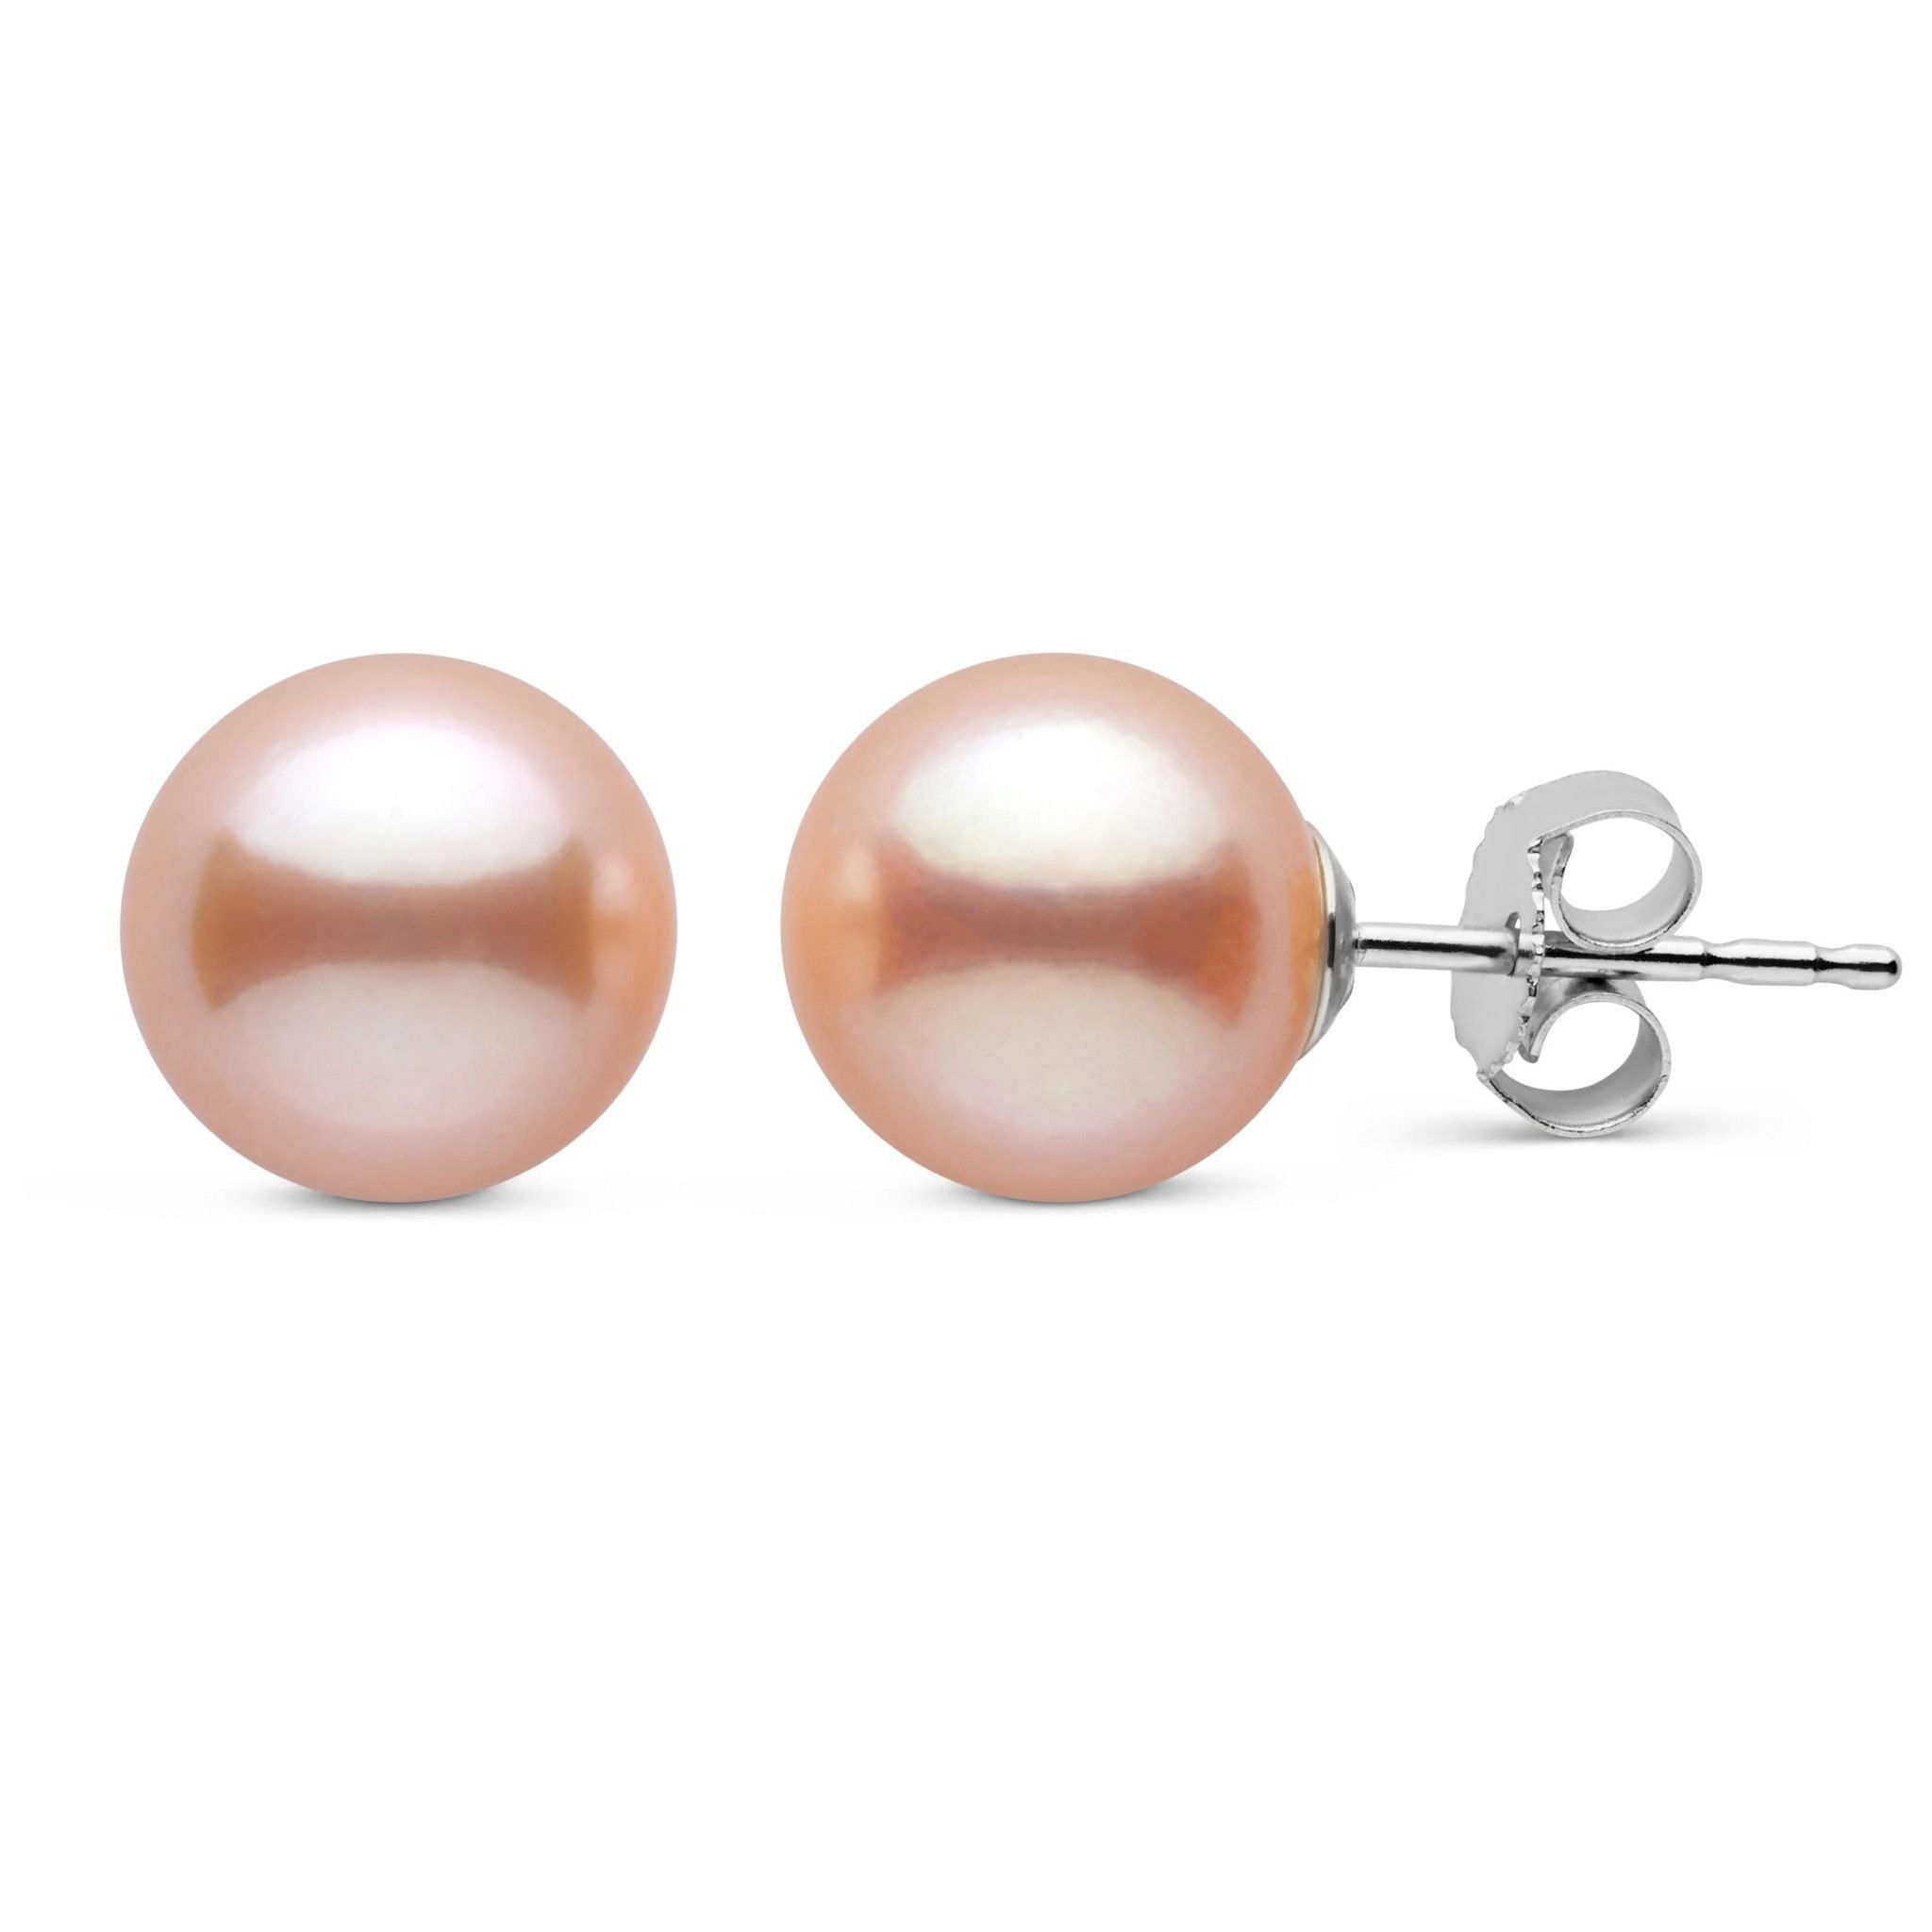 8.5-9.0 mm Pink to Peach Freshadama Freshwater Pearl Stud Earrings